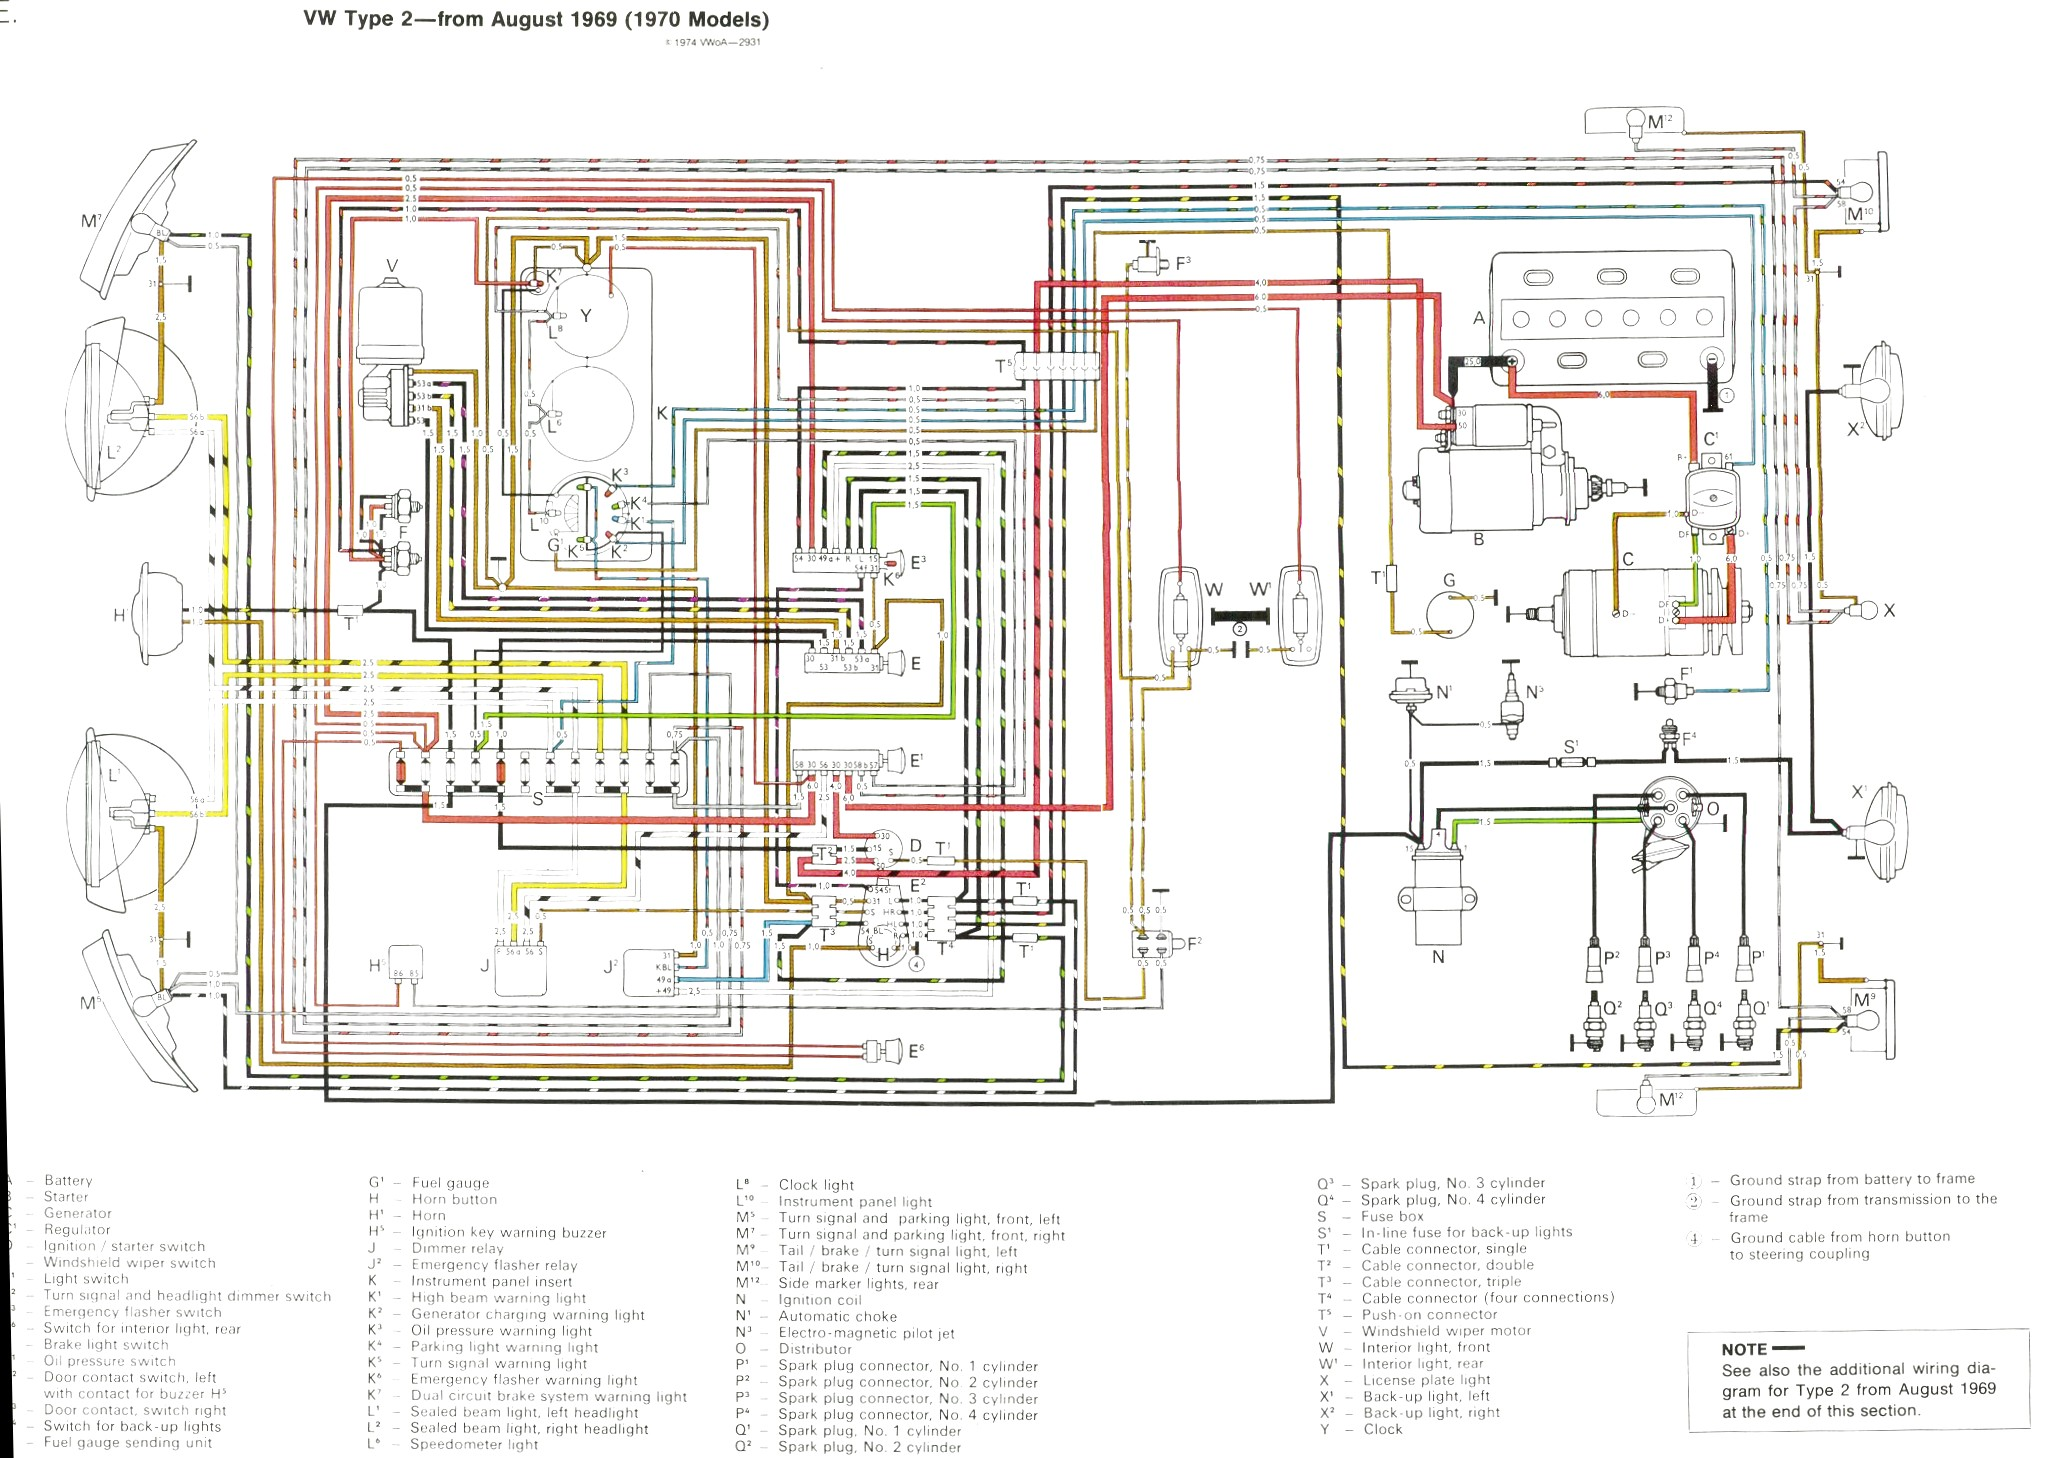 vw bug wiring diagram wirdig vw karmann ghia wiring diagram vw printable wiring